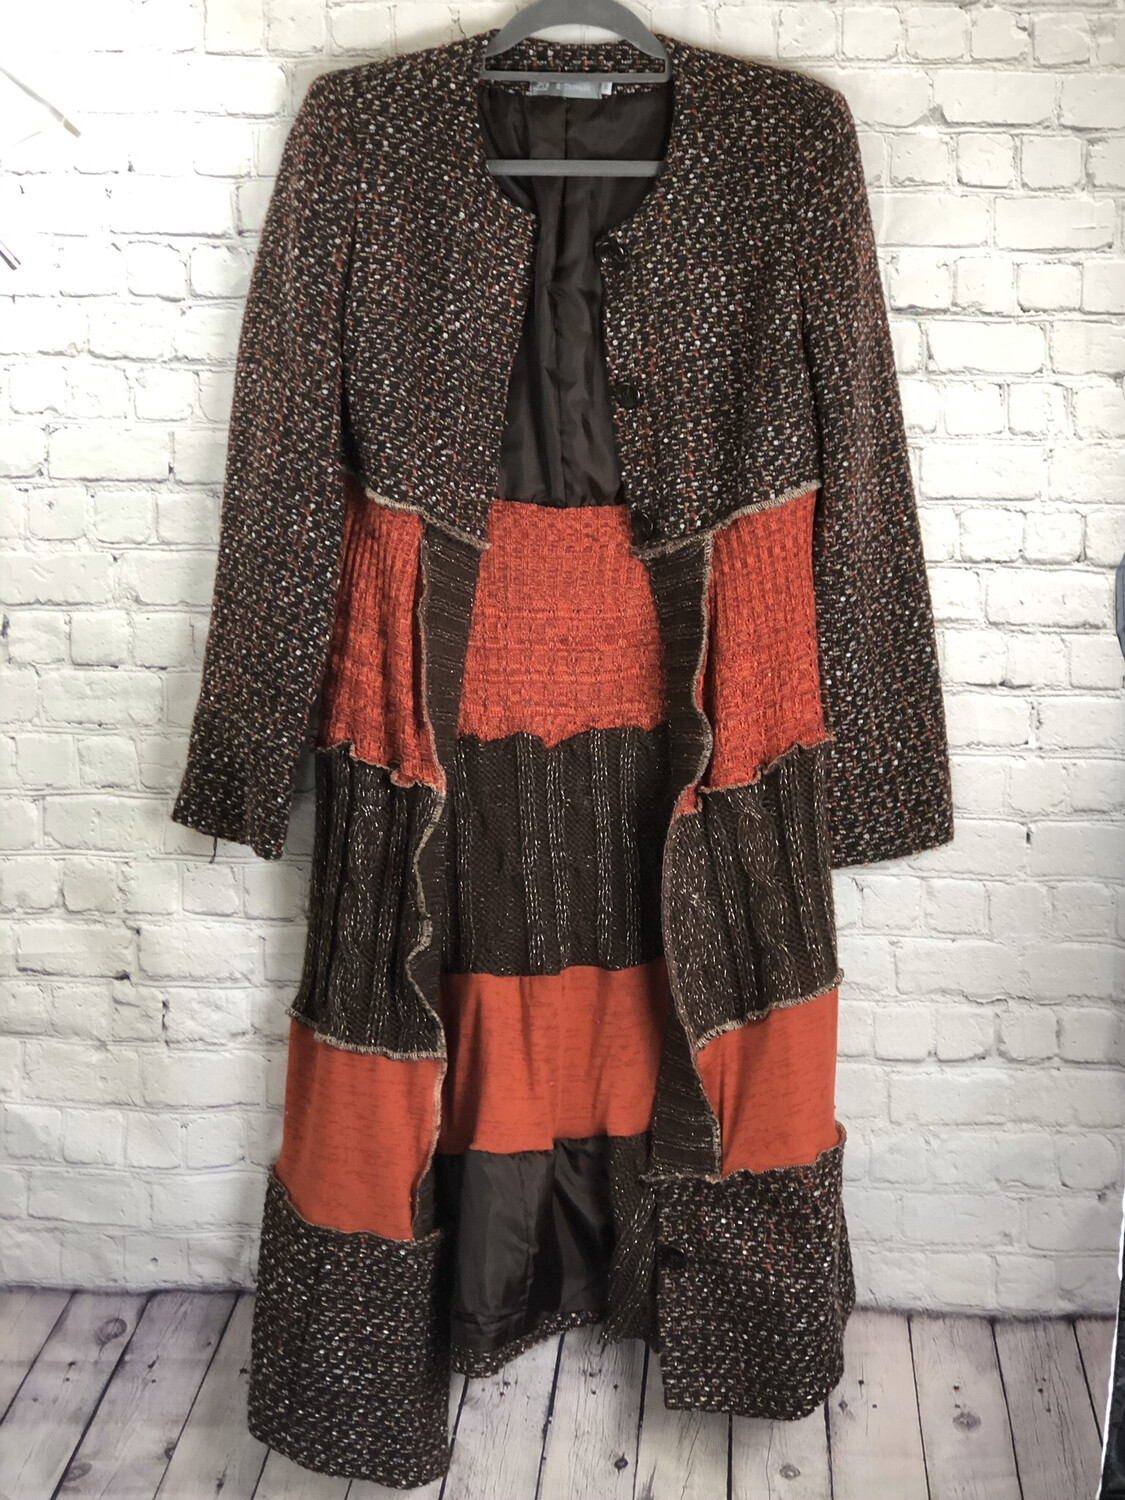 S Threads Upcycled Layer Jacket AKA Jayer In Brown and Orange Blazer Recycled Sweaters Size M